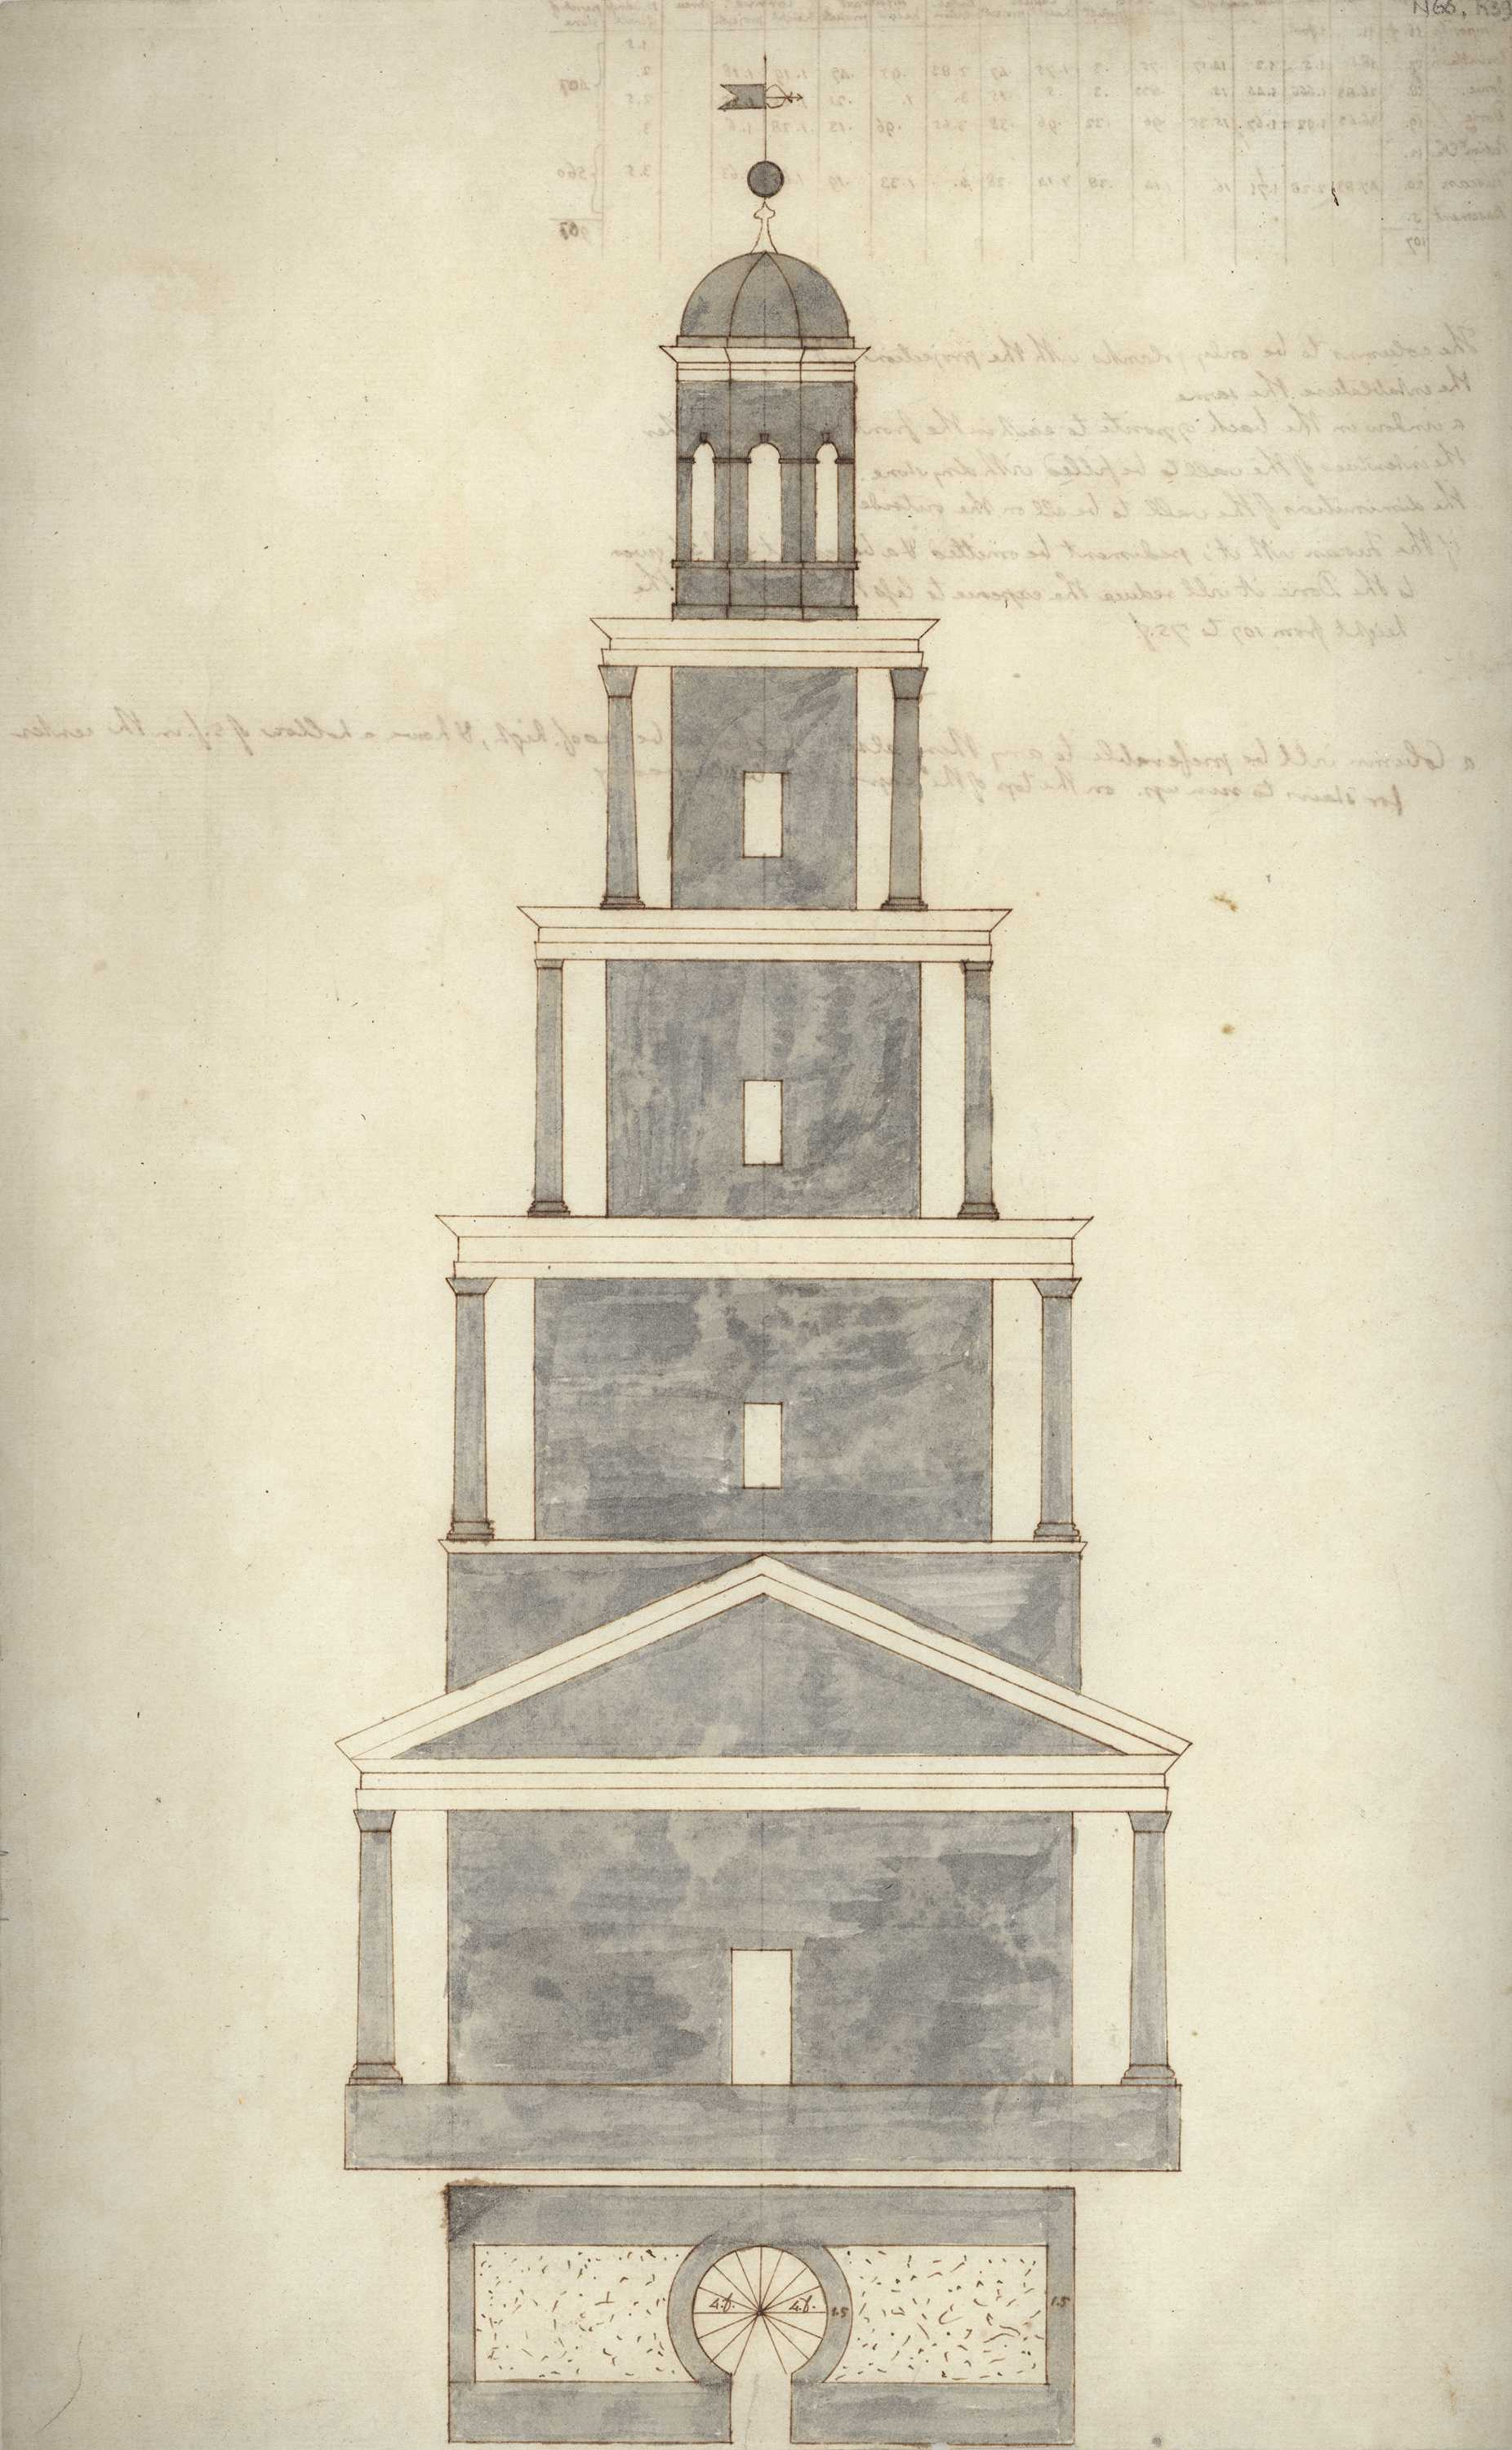 Thomas Jefferson (American 1743–1826) Monticello: Observation tower, recto, ca. 1771 Pen and Ink with gray wash Coolidge Collection of Thomas Jefferson Manuscripts, Massachusetts Historical Society N66:K39